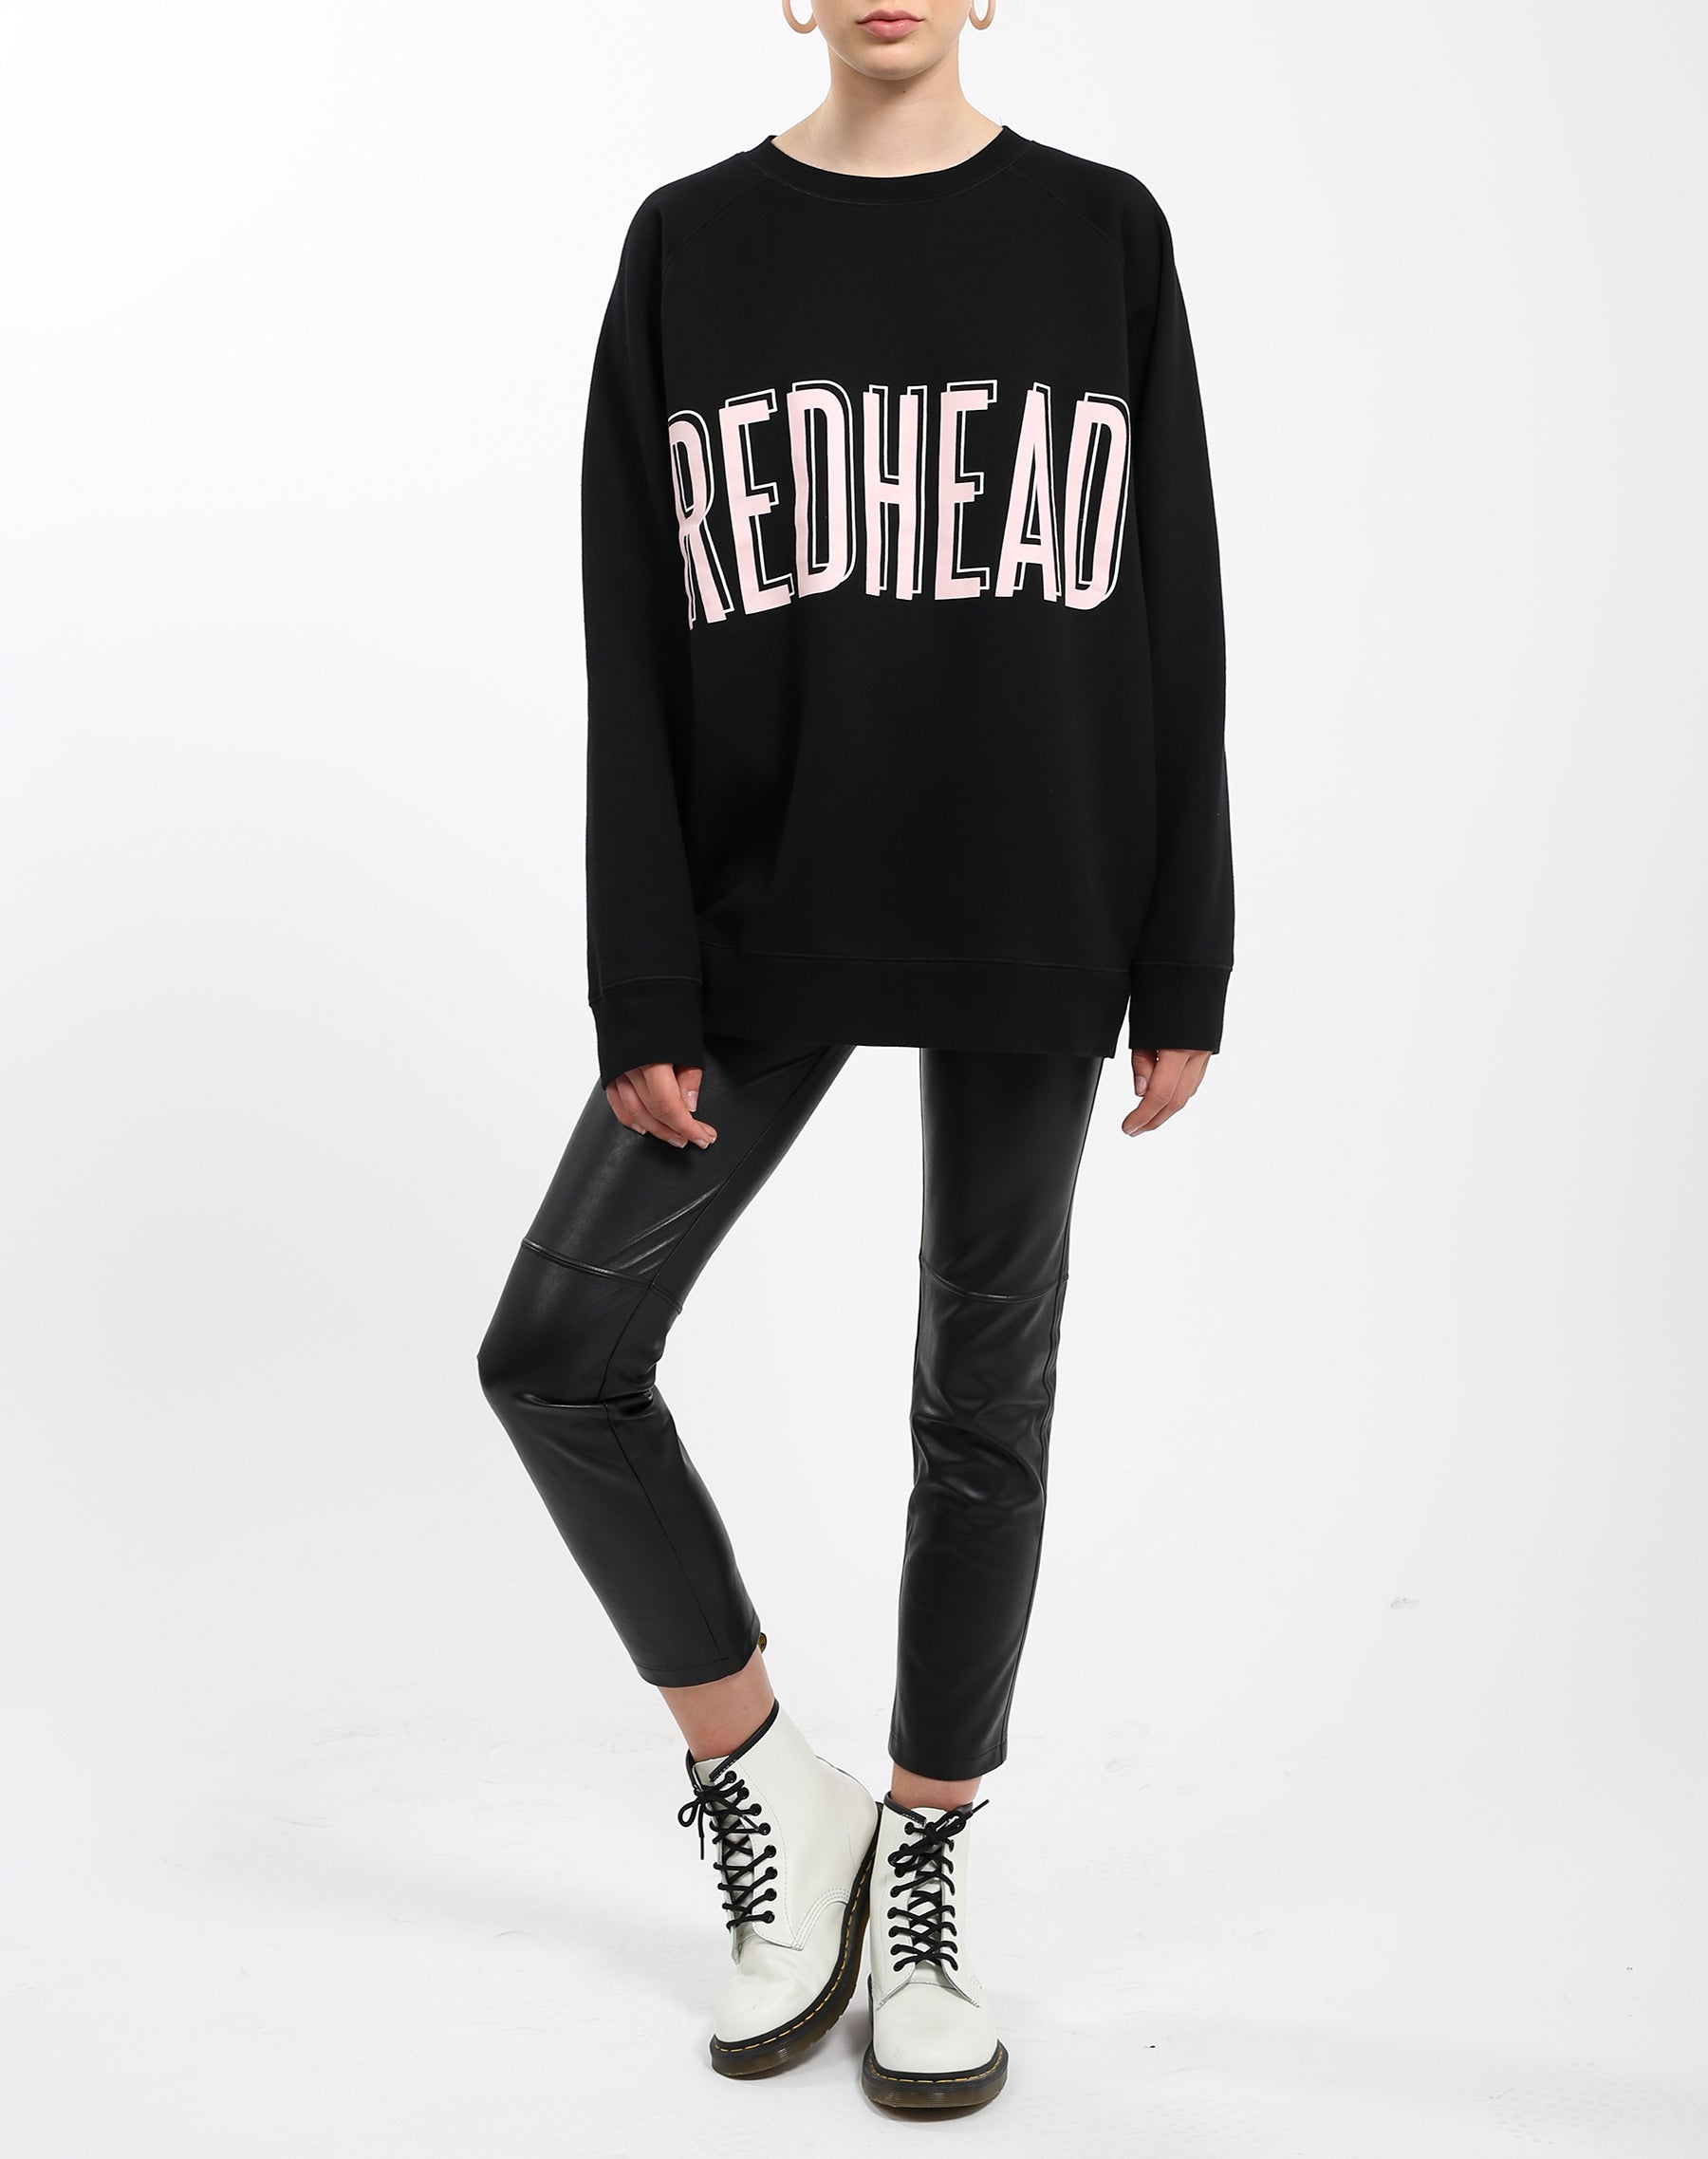 Photo 2 of the Redhead big sister crew neck sweatshirt in pink by Brunette the Label.